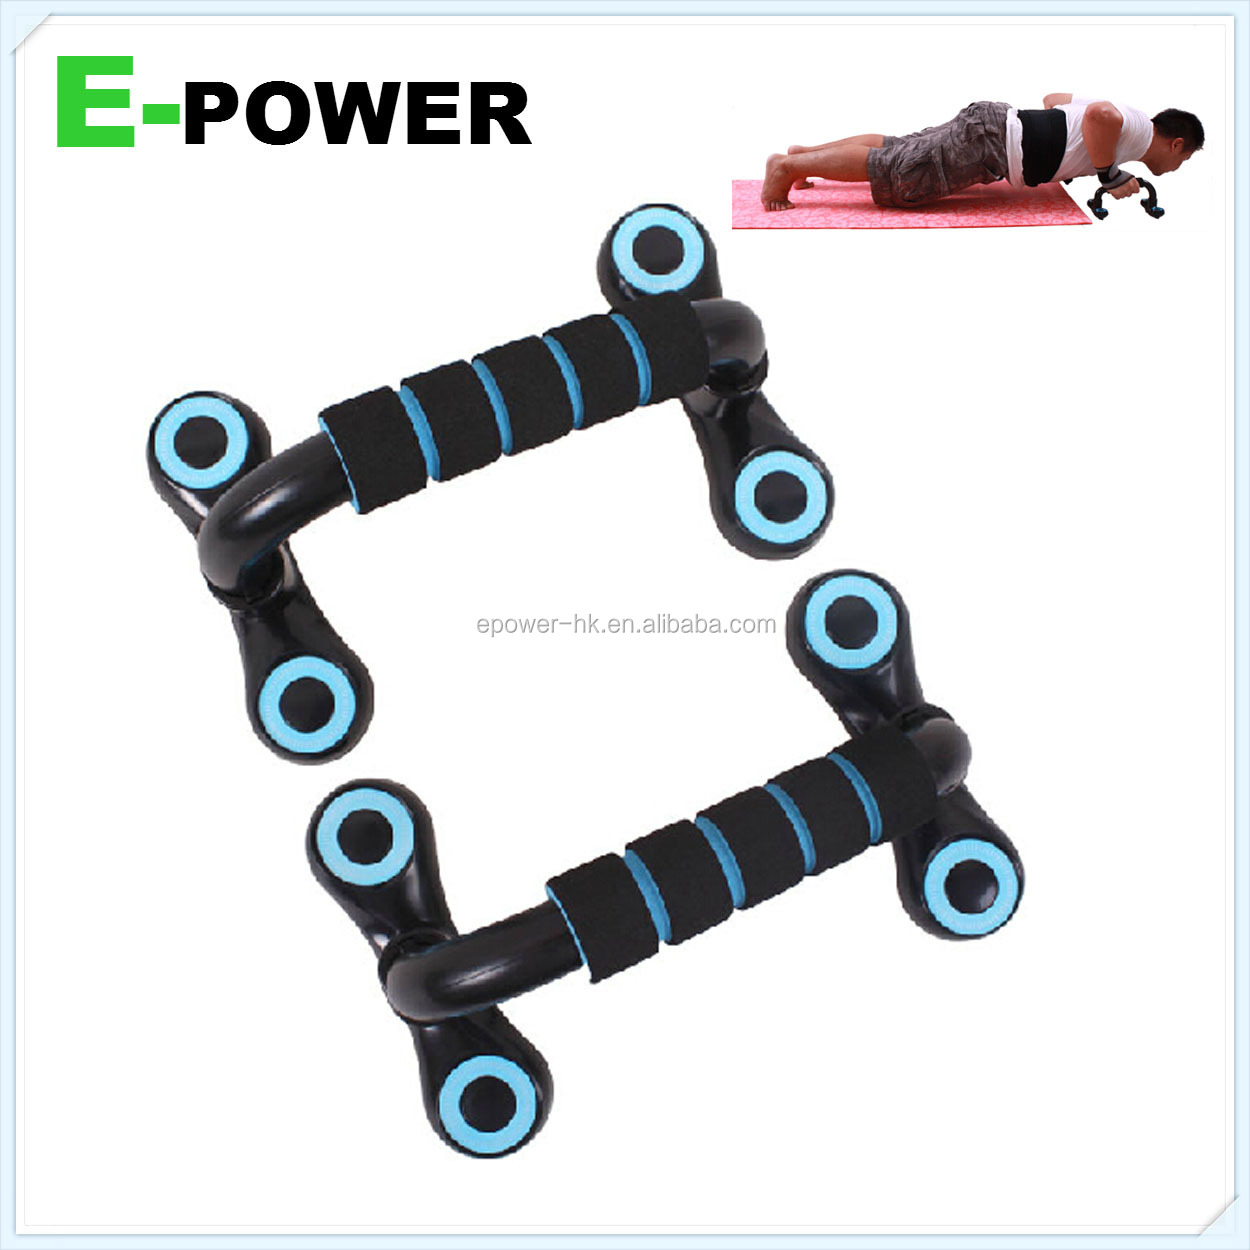 Perfect Pushup Elite pushup stands